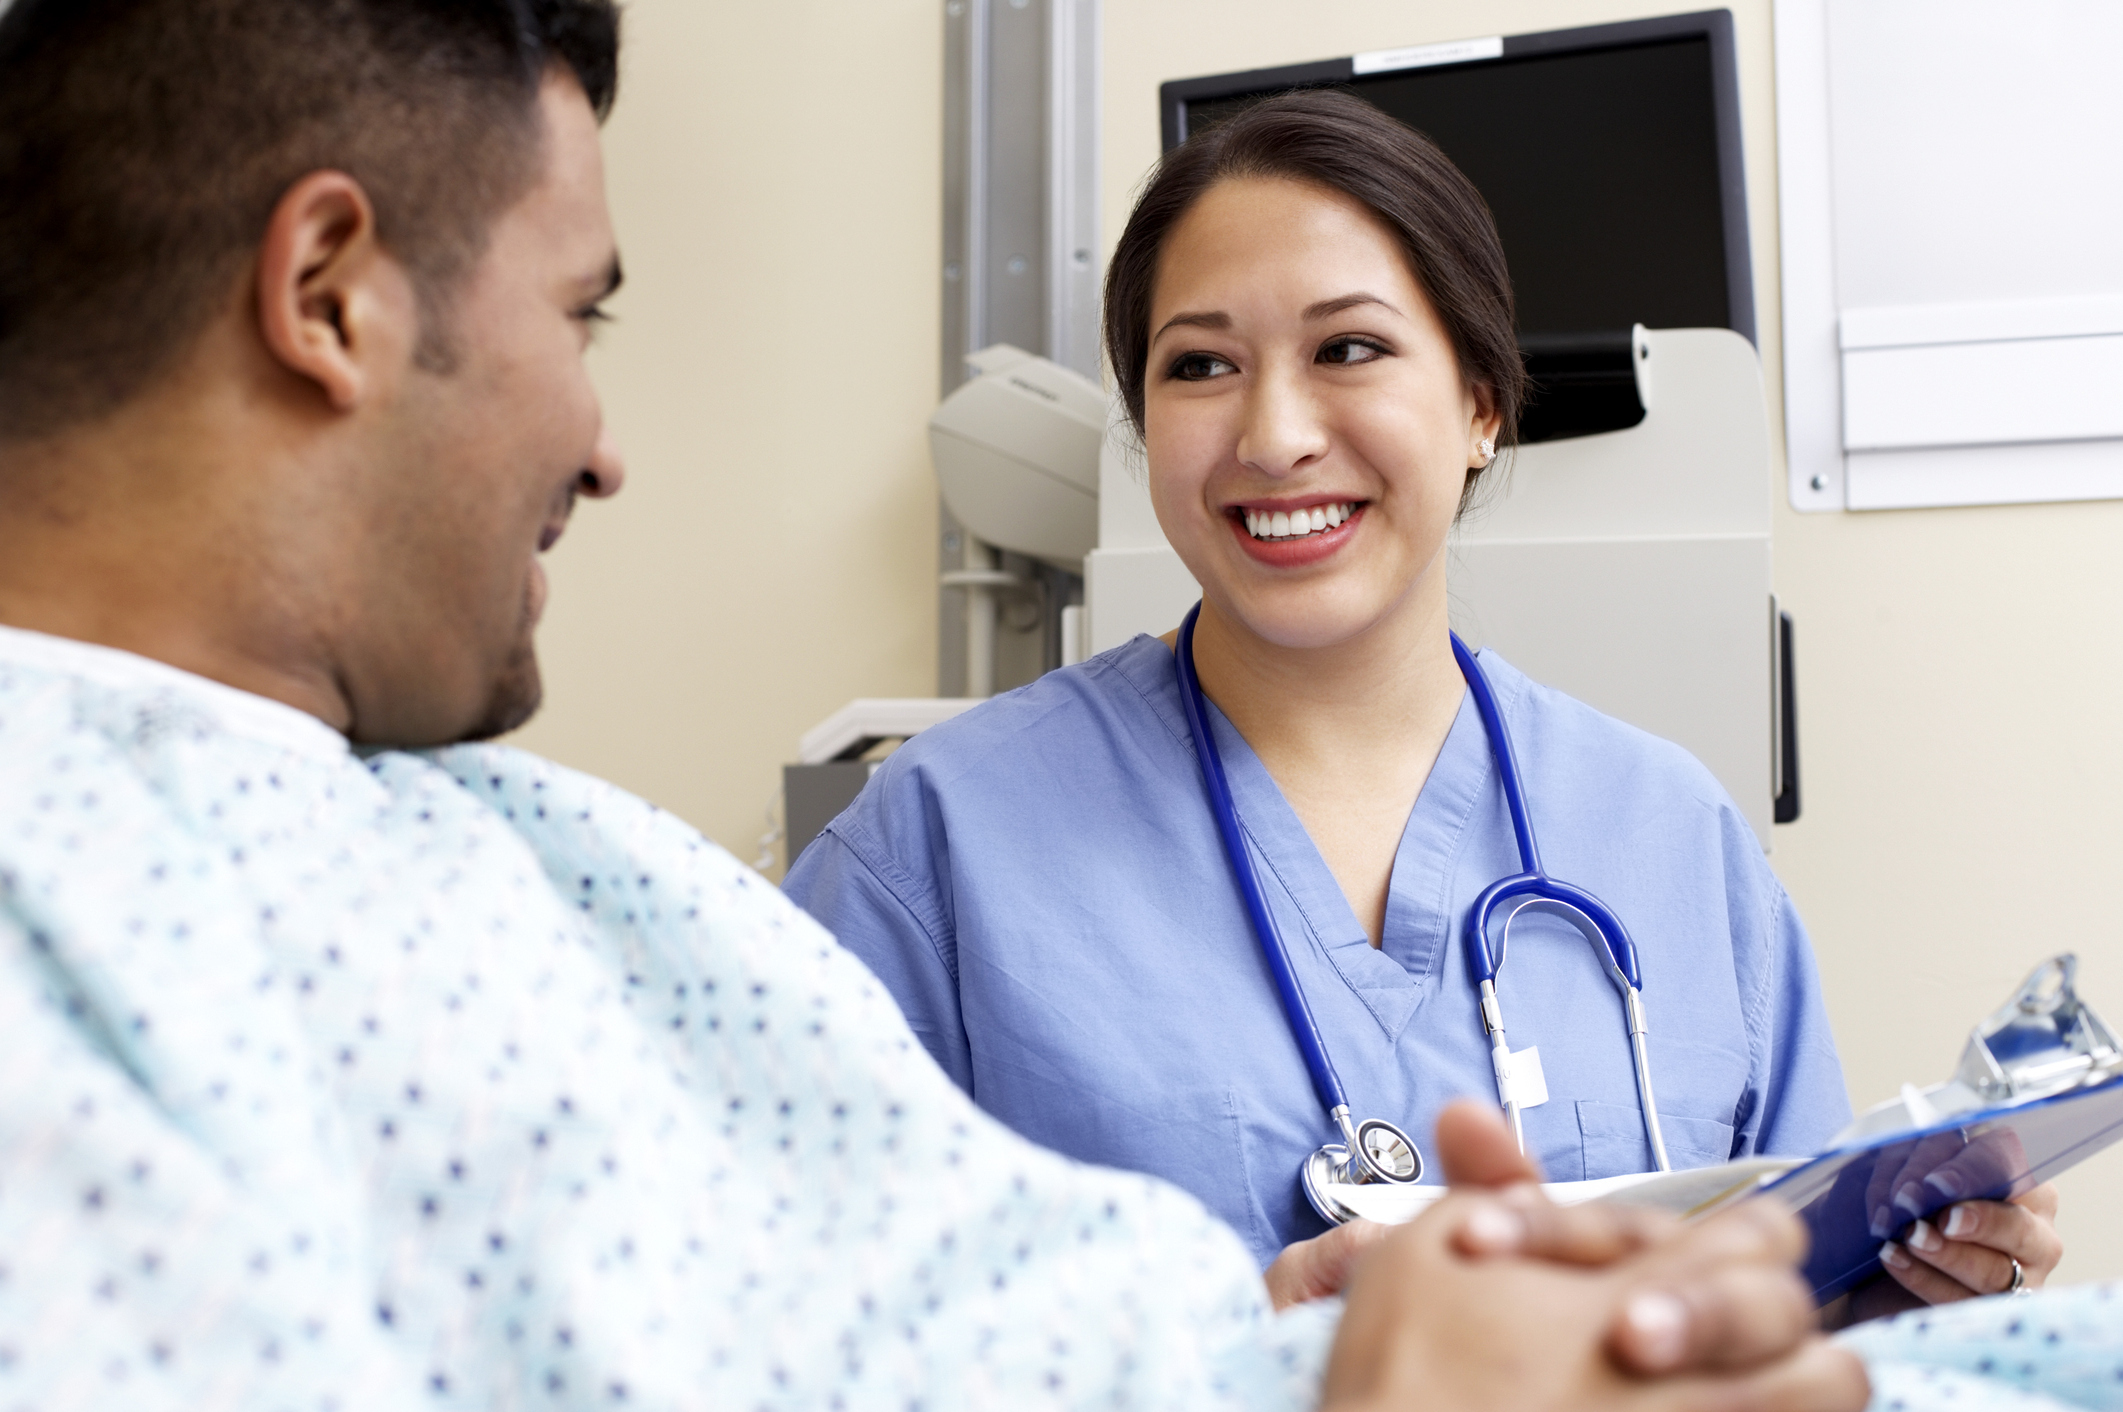 Healthcare worker with a patient